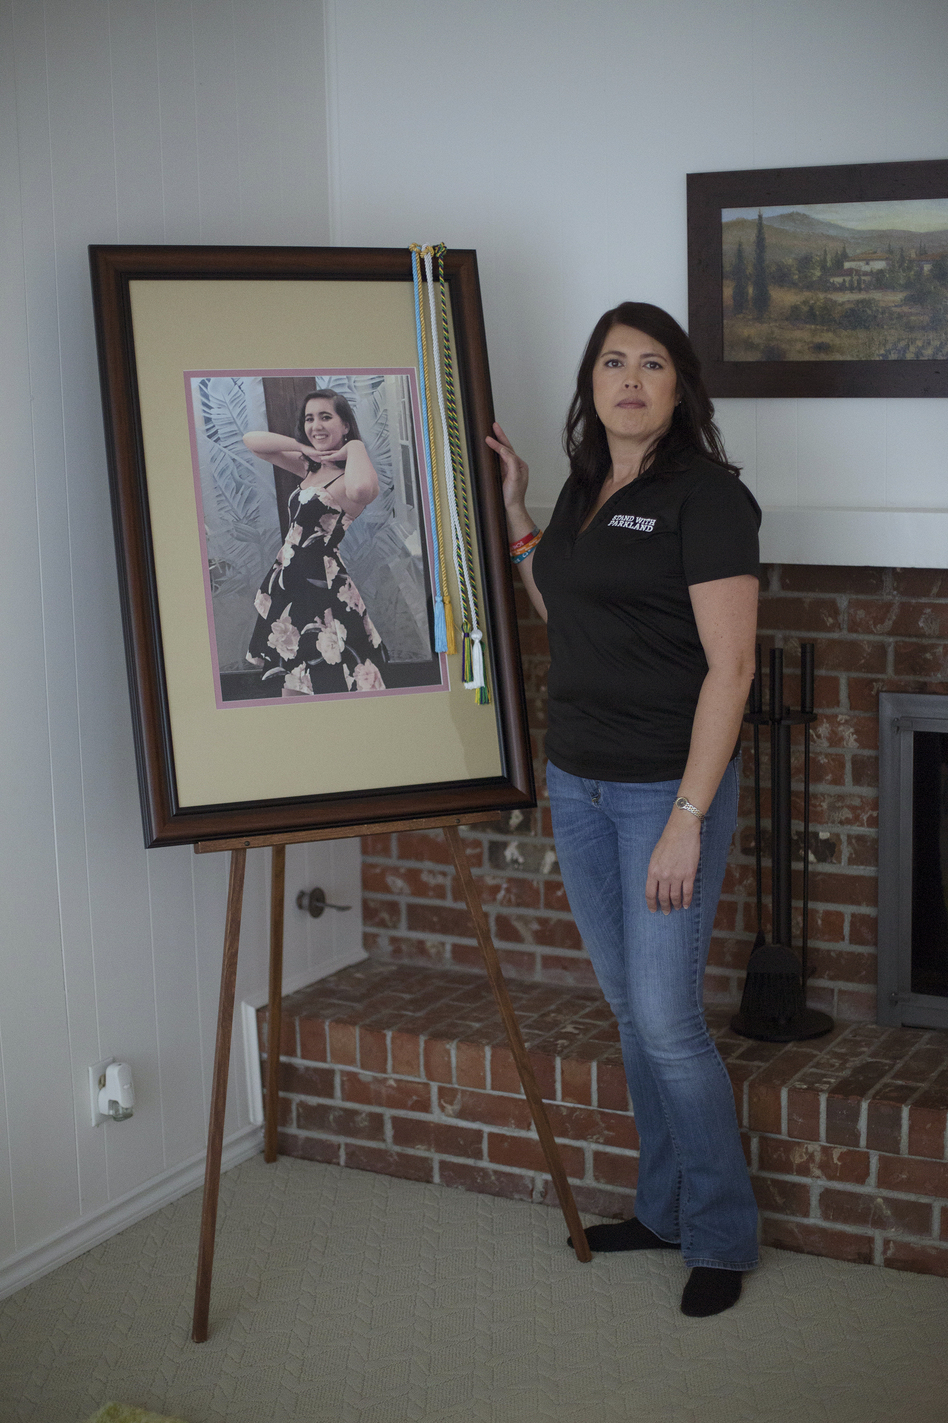 One year after Carmen's death, April Schentrup stands beside a photograph of her daughter that was used during her funeral but now rests in the family's new home. April, who worked as an elementary school principal near Parkland, Fla., now advocates for gun reform. (Alyse Young for NPR)